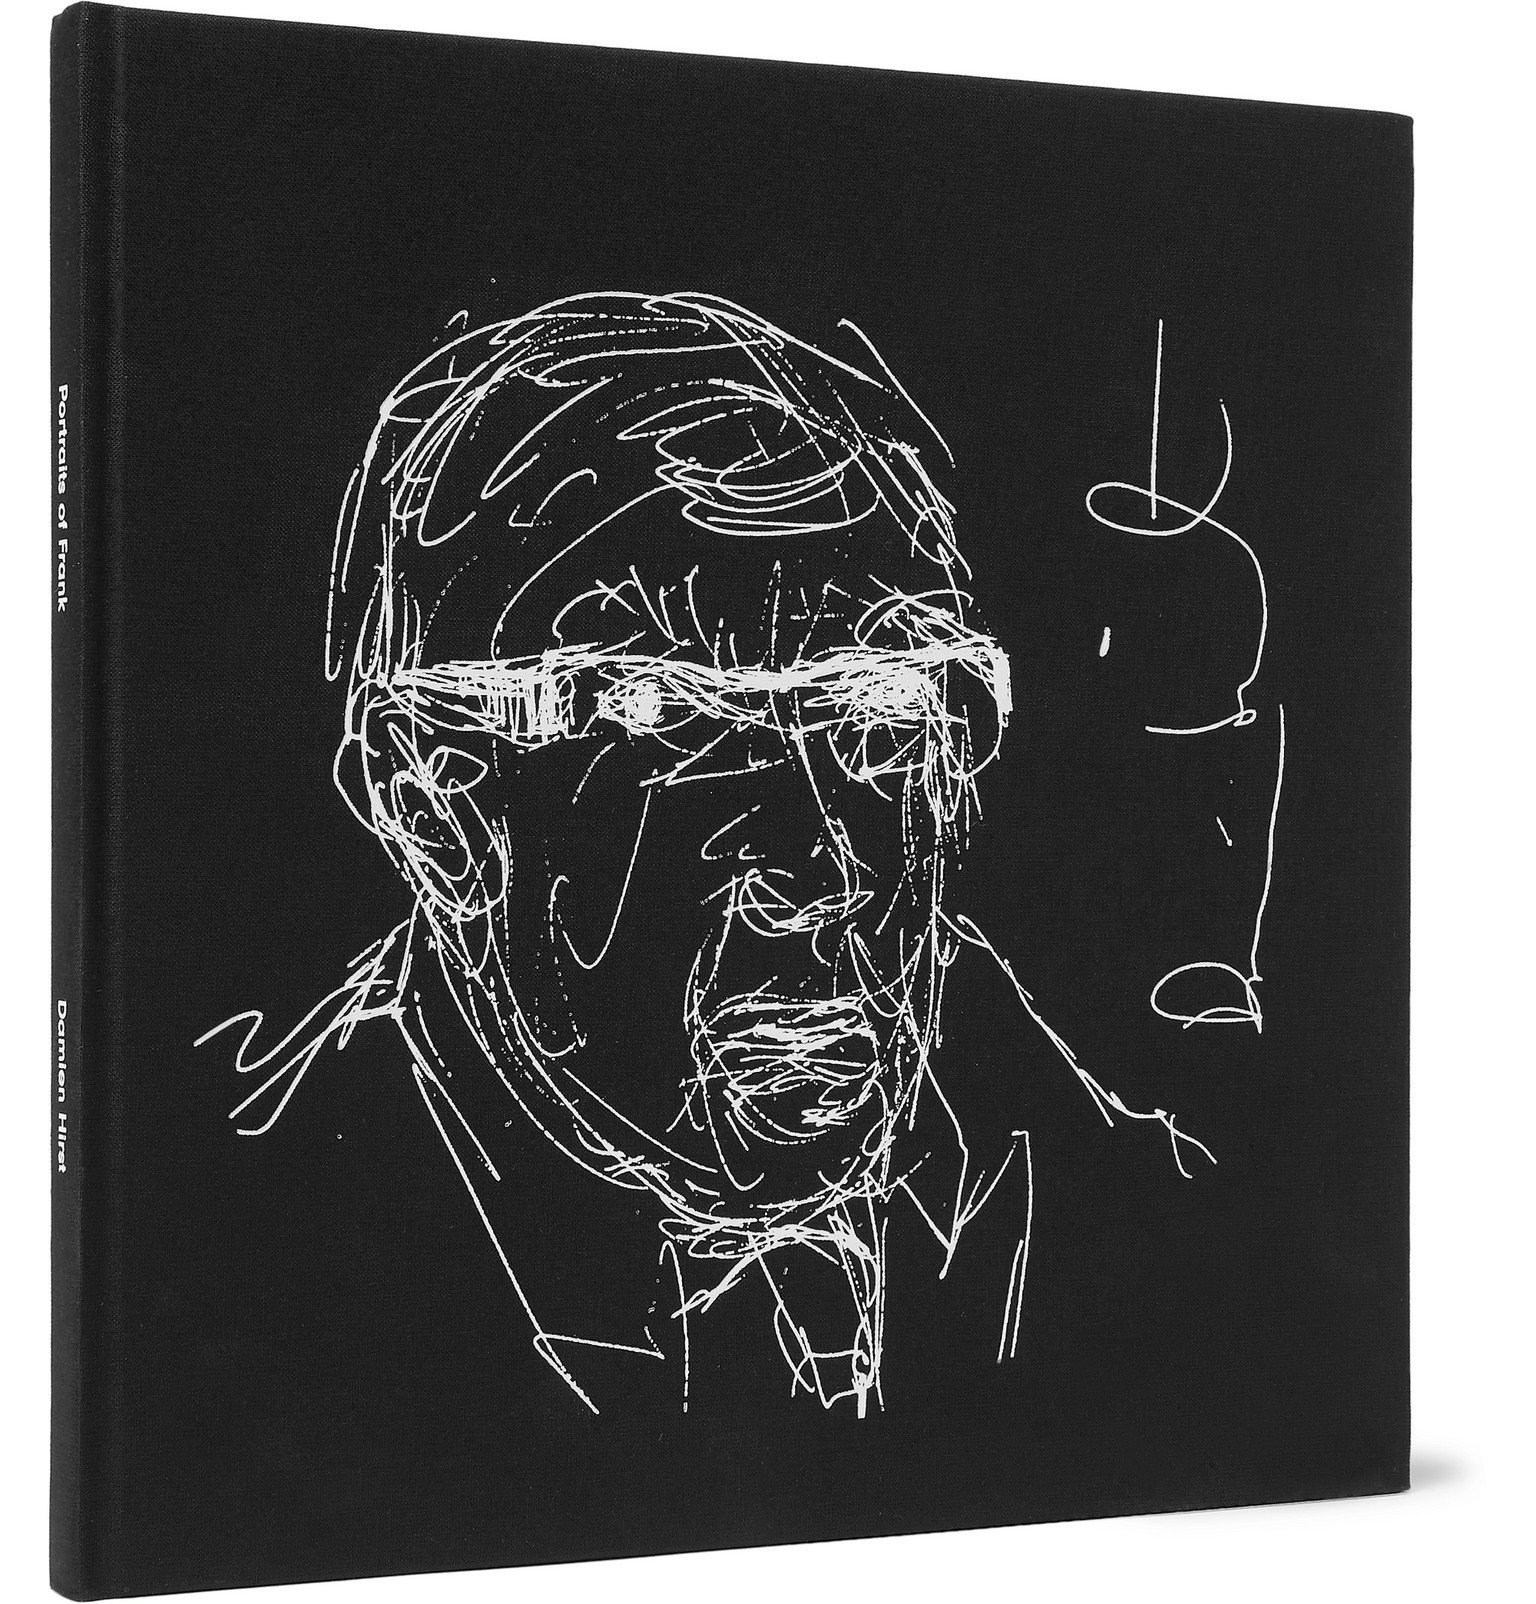 Photo: The Wolseley Collection - Portraits of Frank: The Wolseley Drawings Hardcover Book - Black